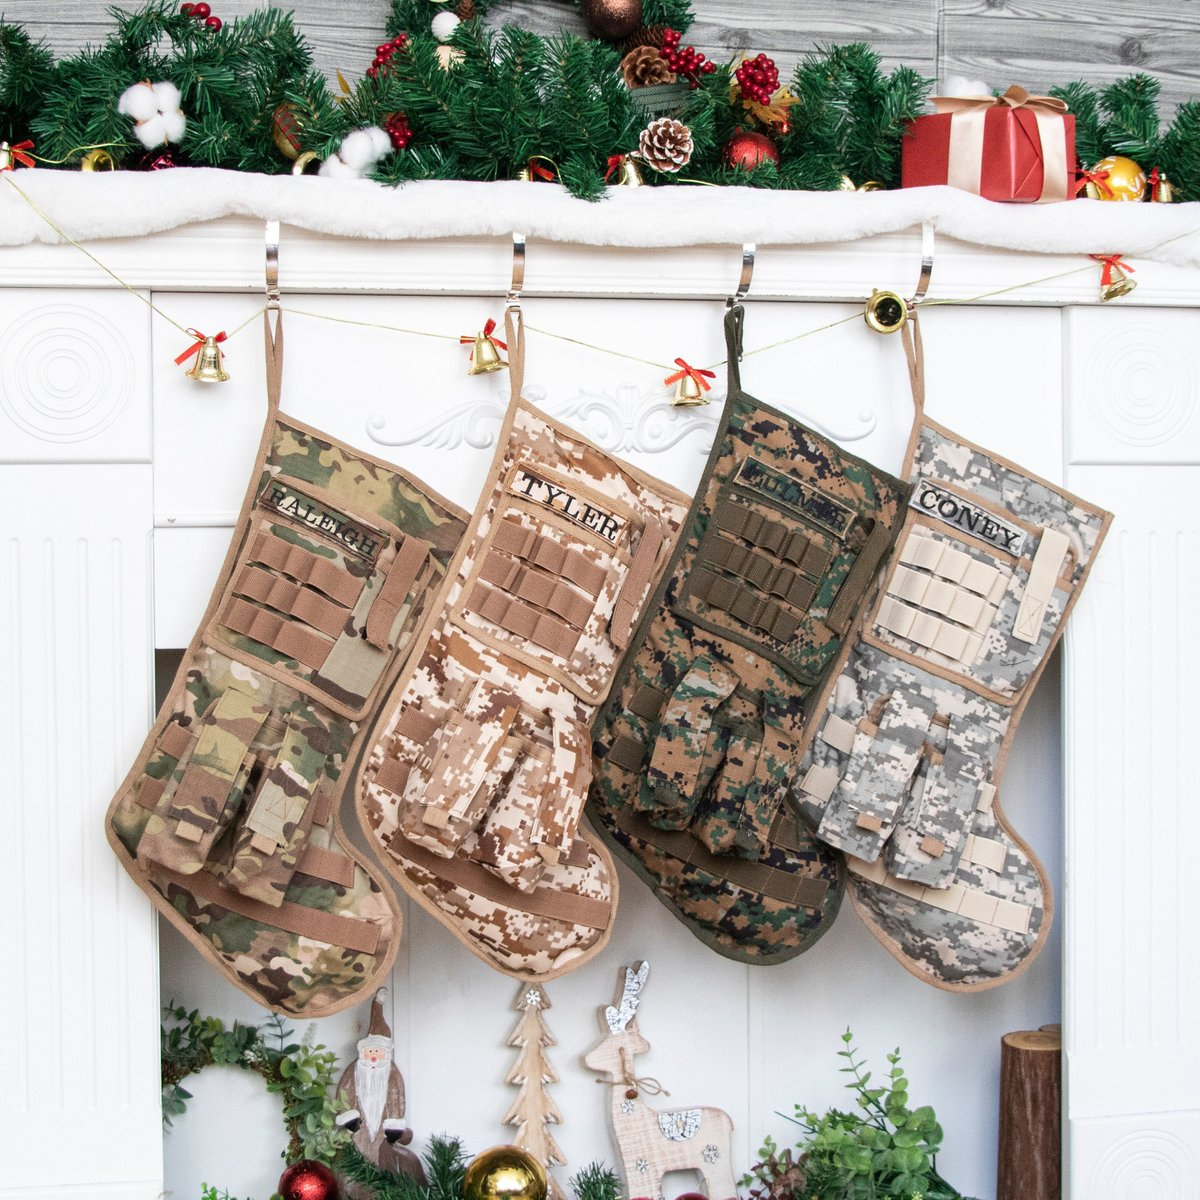 Tactical Christmas stocking for tactical enthusiast or camo lovers !!!  #homedecor #christmasdecor #christmasgift #christmas #camouflage #camo #military #motherofboys #tactical #usmc #usarmy #holidaygift https://etsy.me/31L1Cno pic.twitter.com/guAwvWgz38